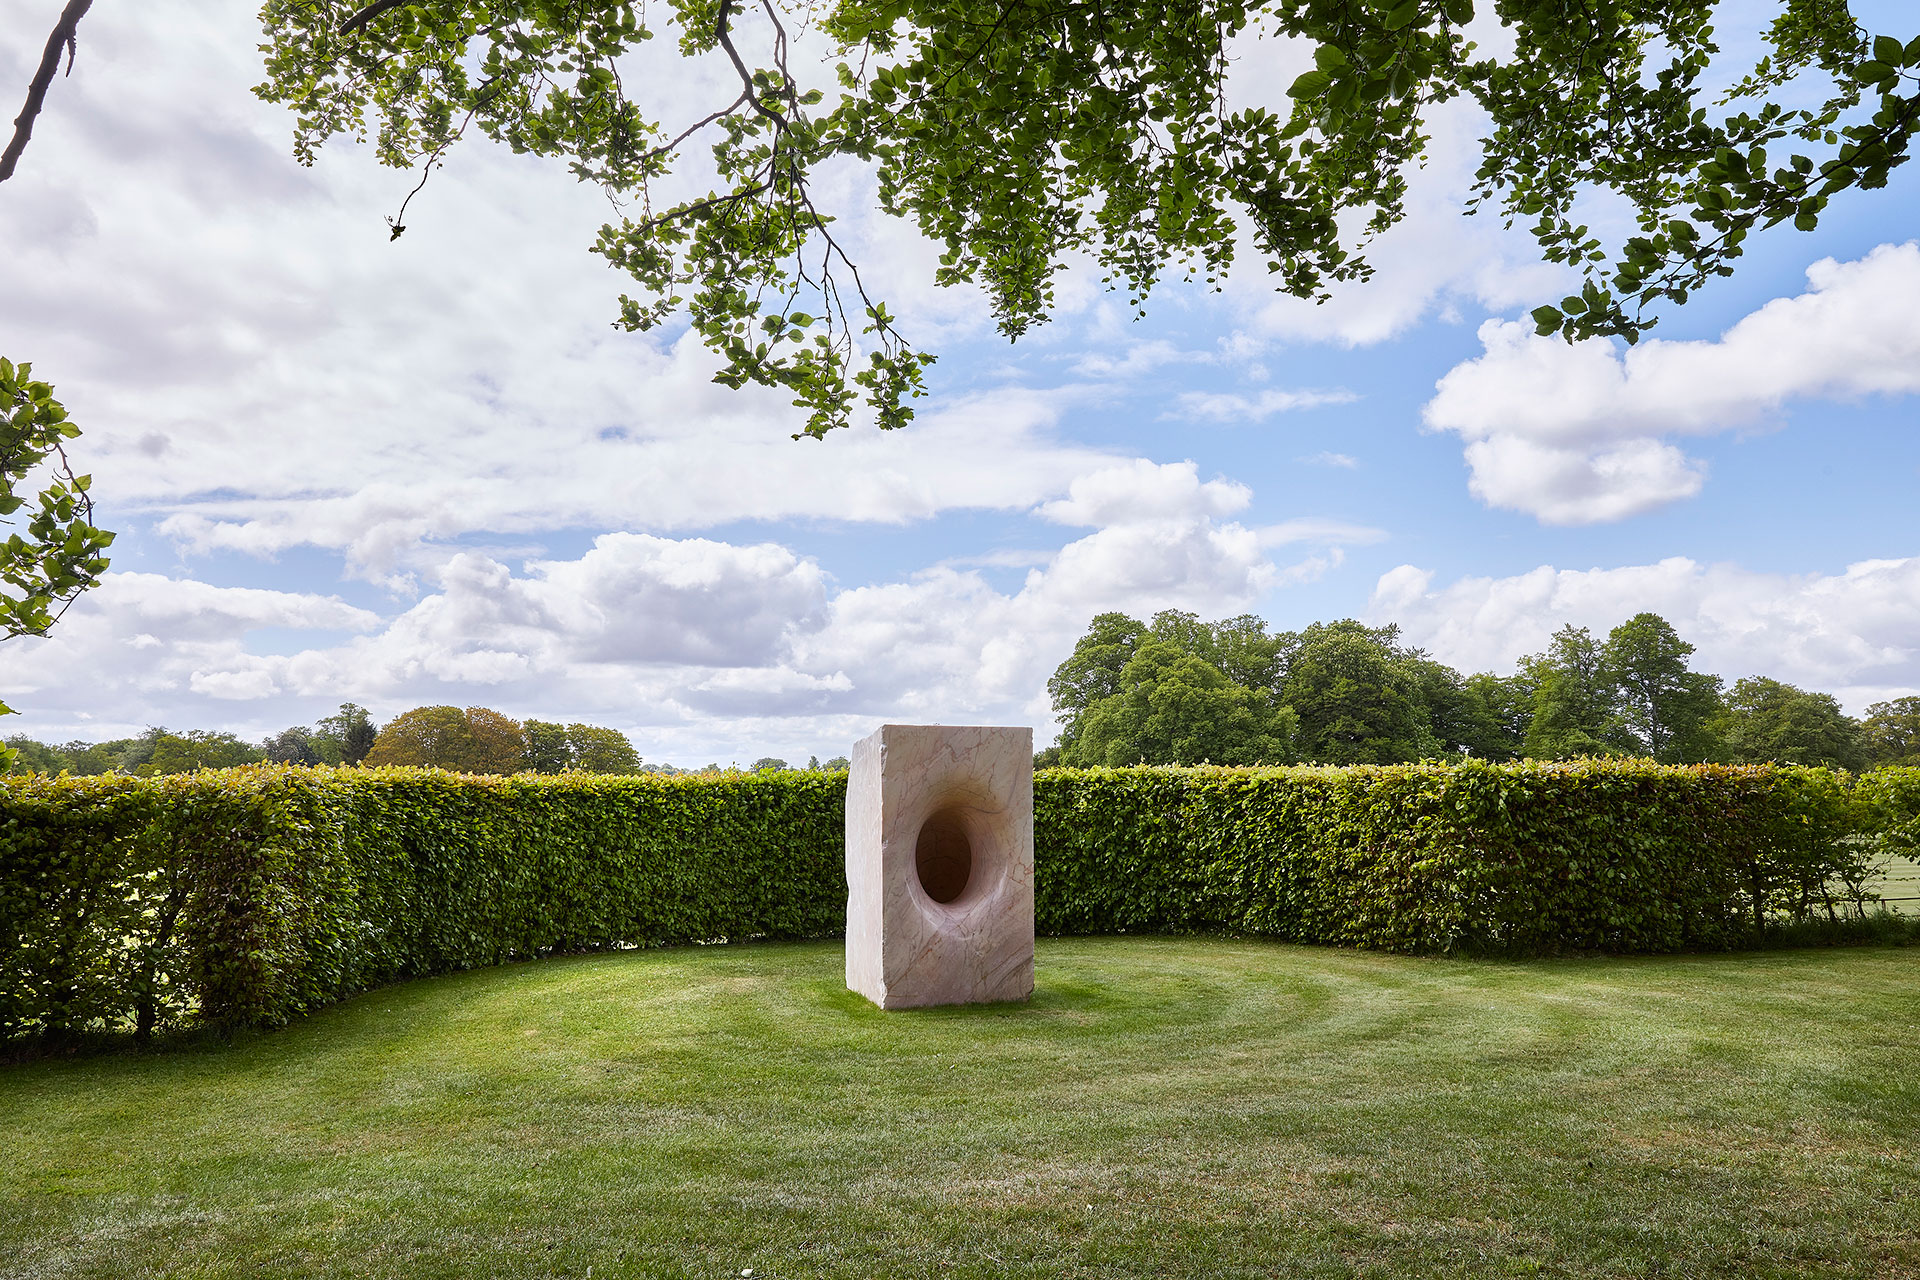 Exhibition view, Anish Kapoor at Houghton Hall. © Anish Kapoor. All rights reserved DACS, 2020. Photo by Pete Huggins. Featured: Sophia, 2003, marble. Courtesy the artist.